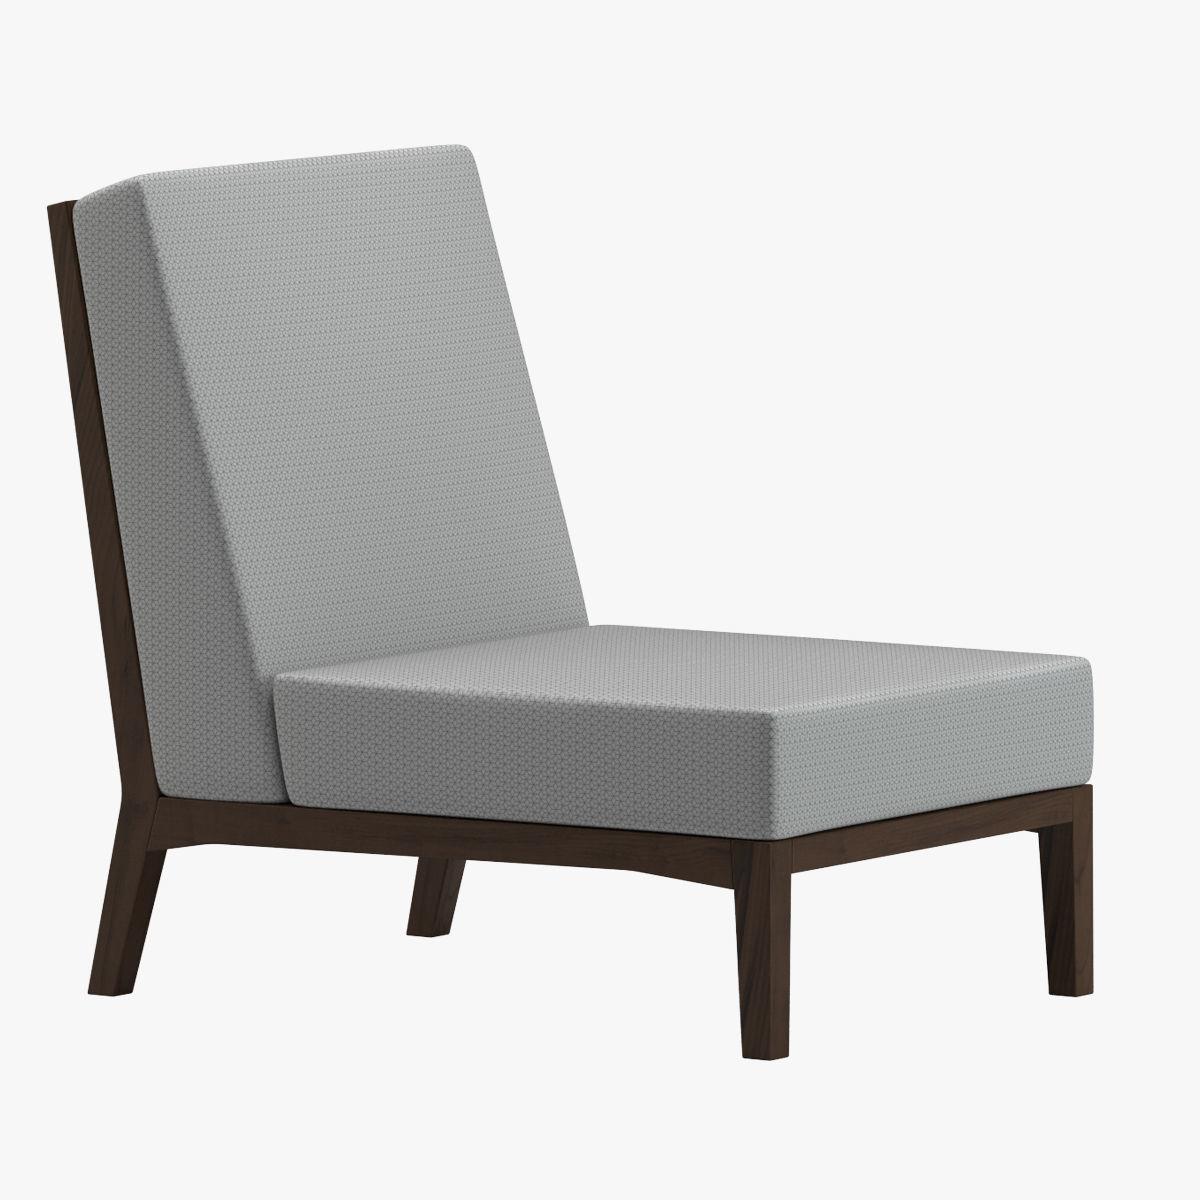 Holly Hunt IO chair